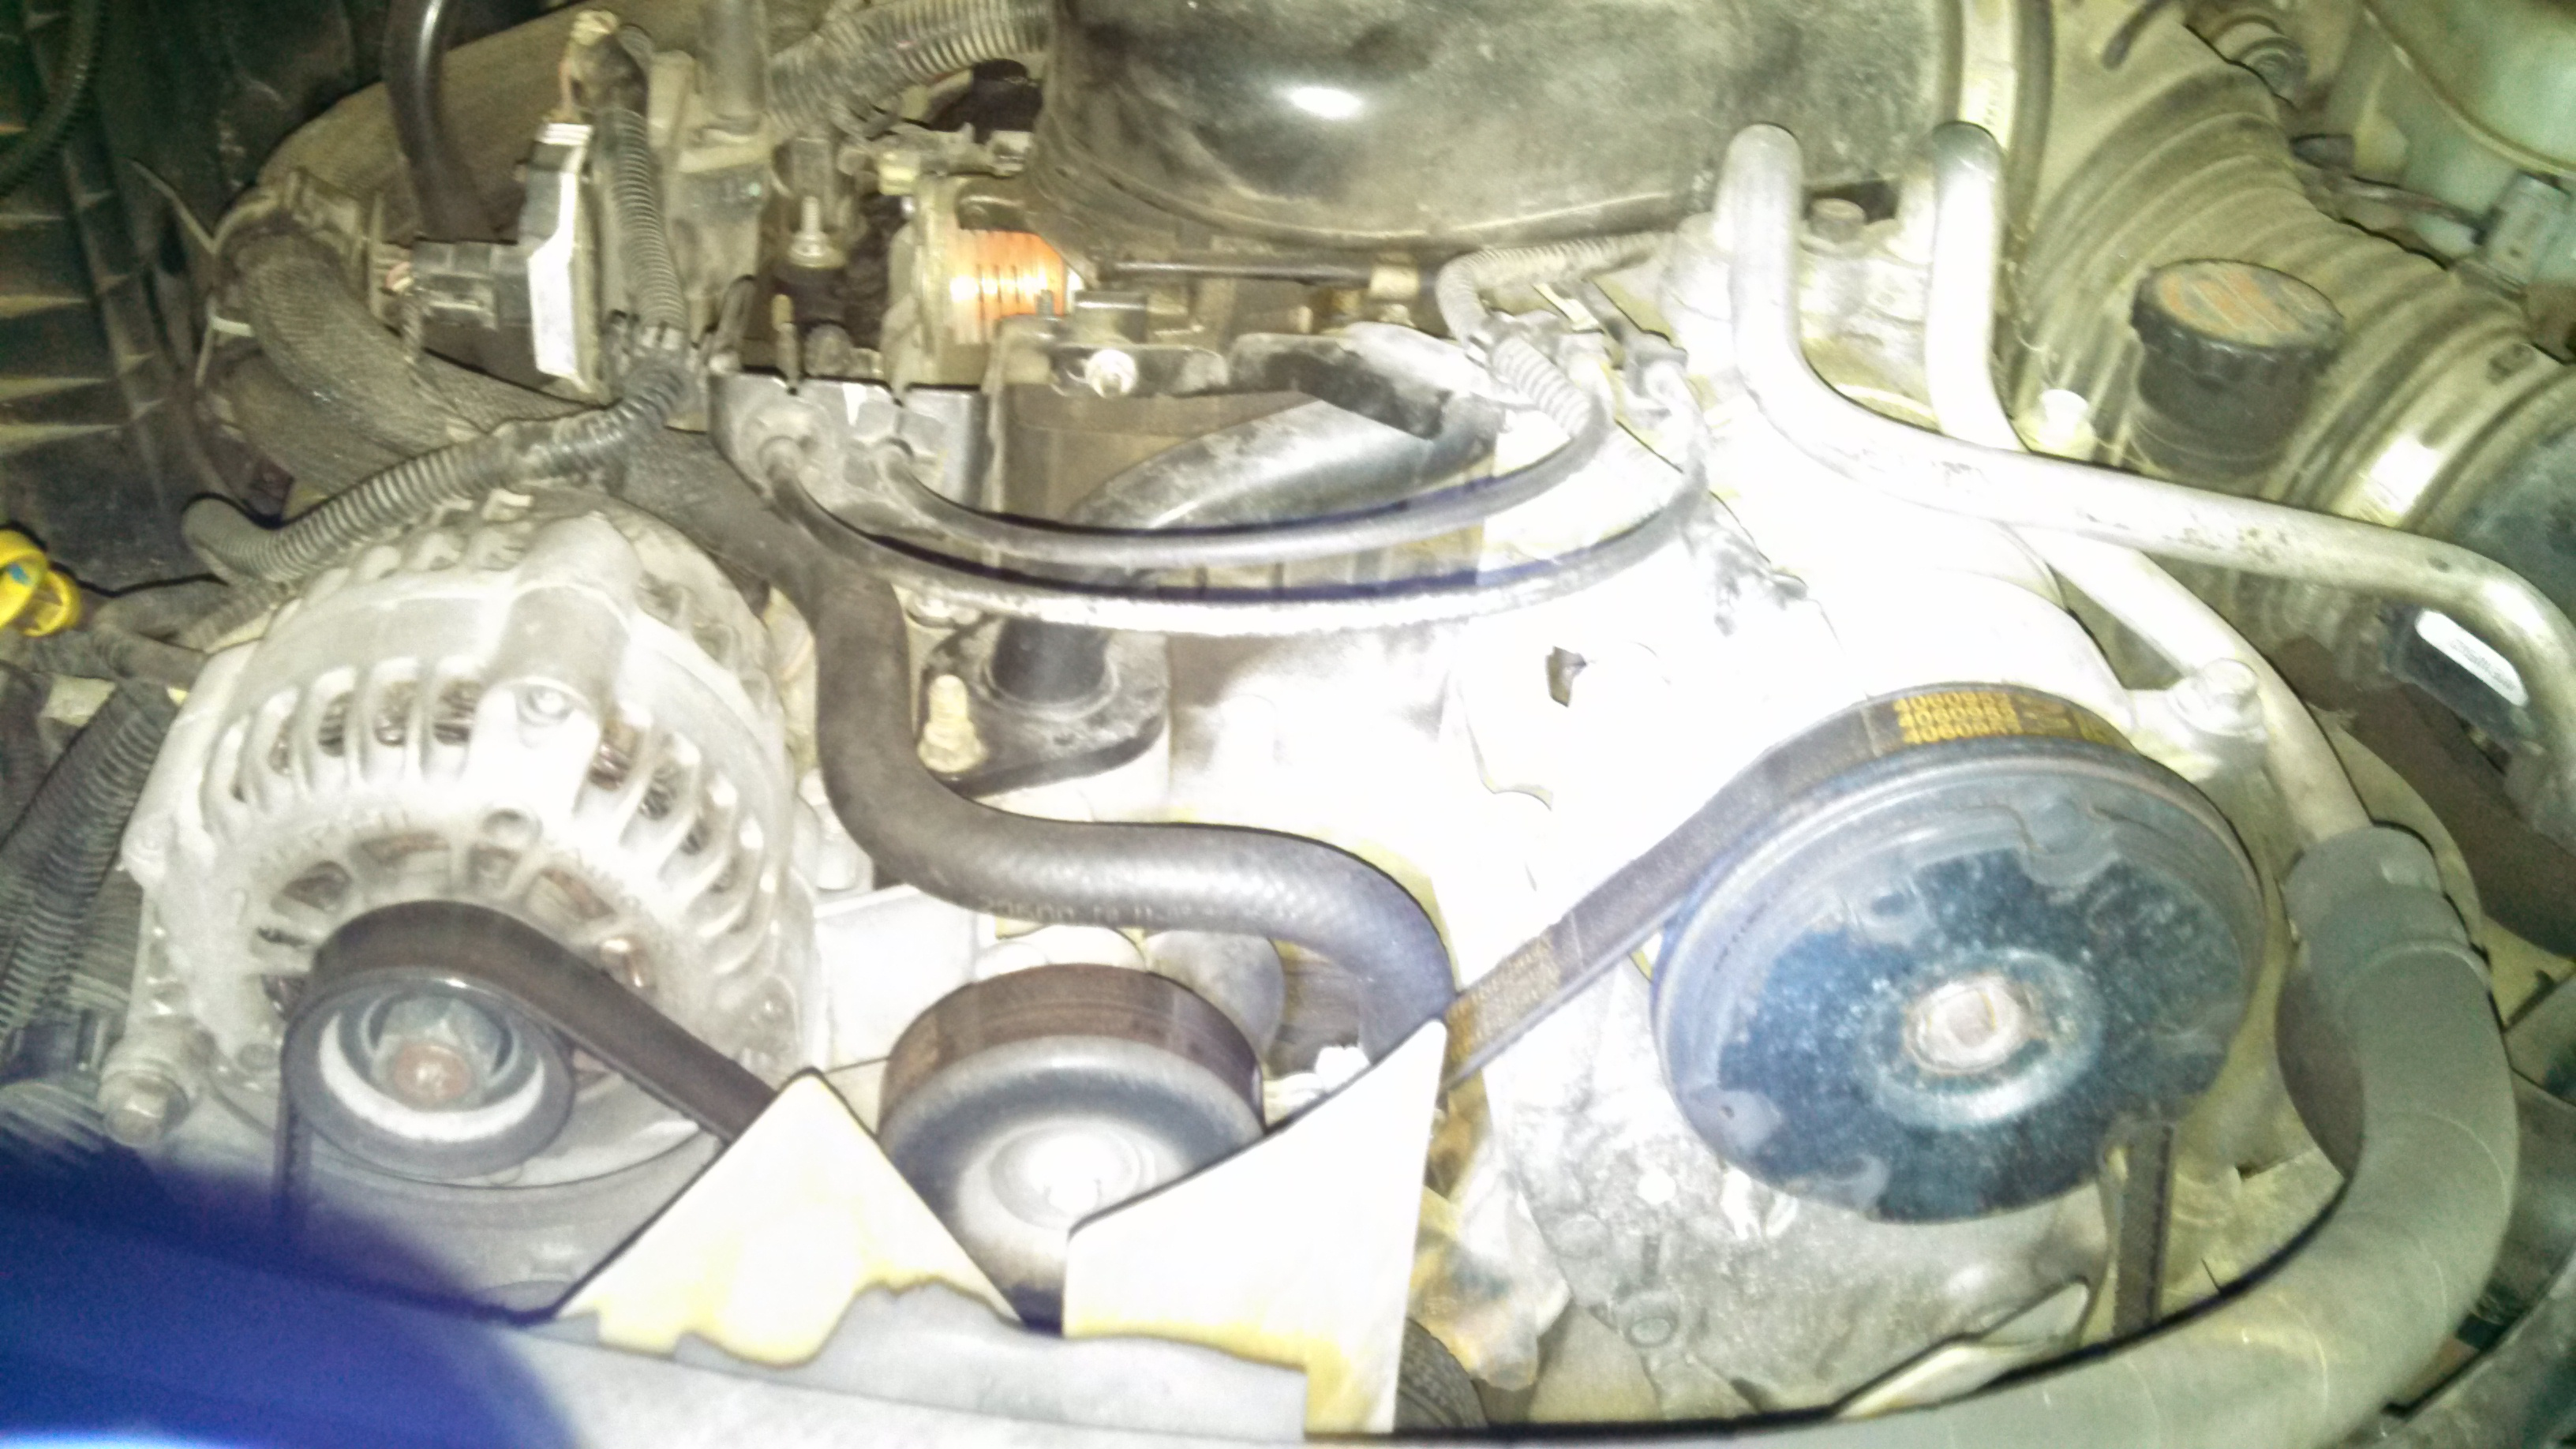 2003 chevy blazer without egr valve shows code po404